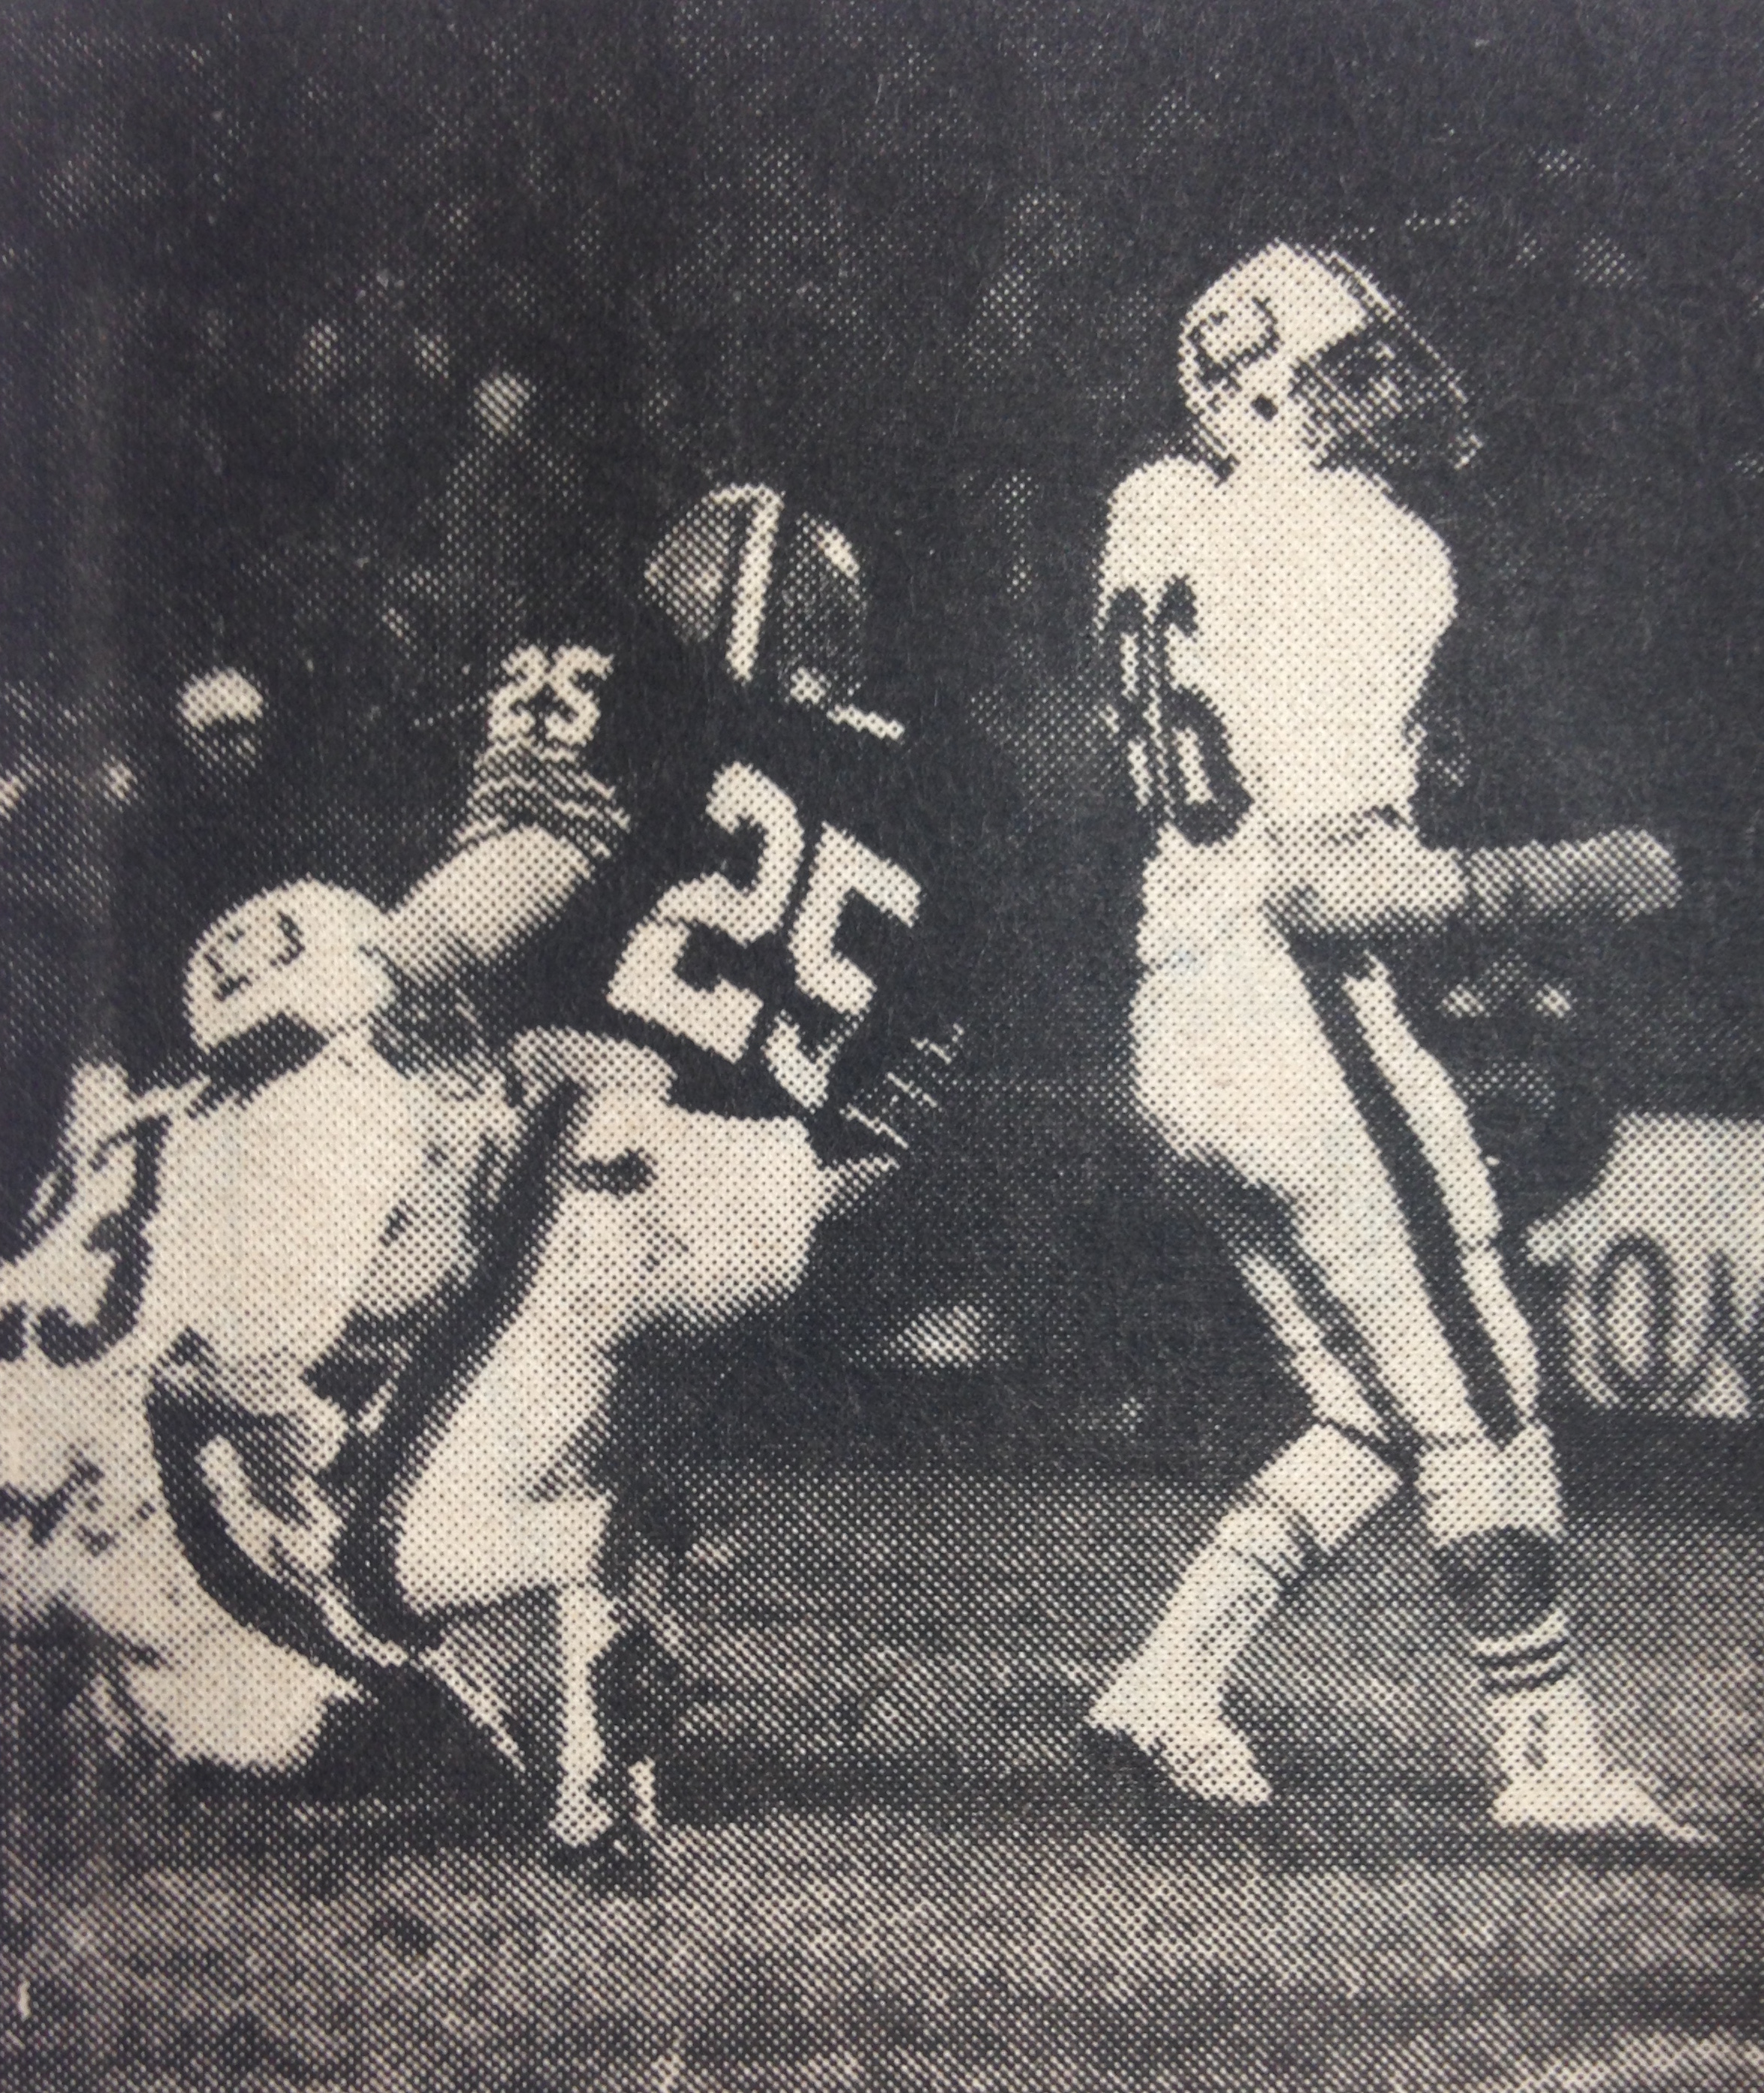 Shawn Ream (86) added a 28-yard field goal for the Stallions